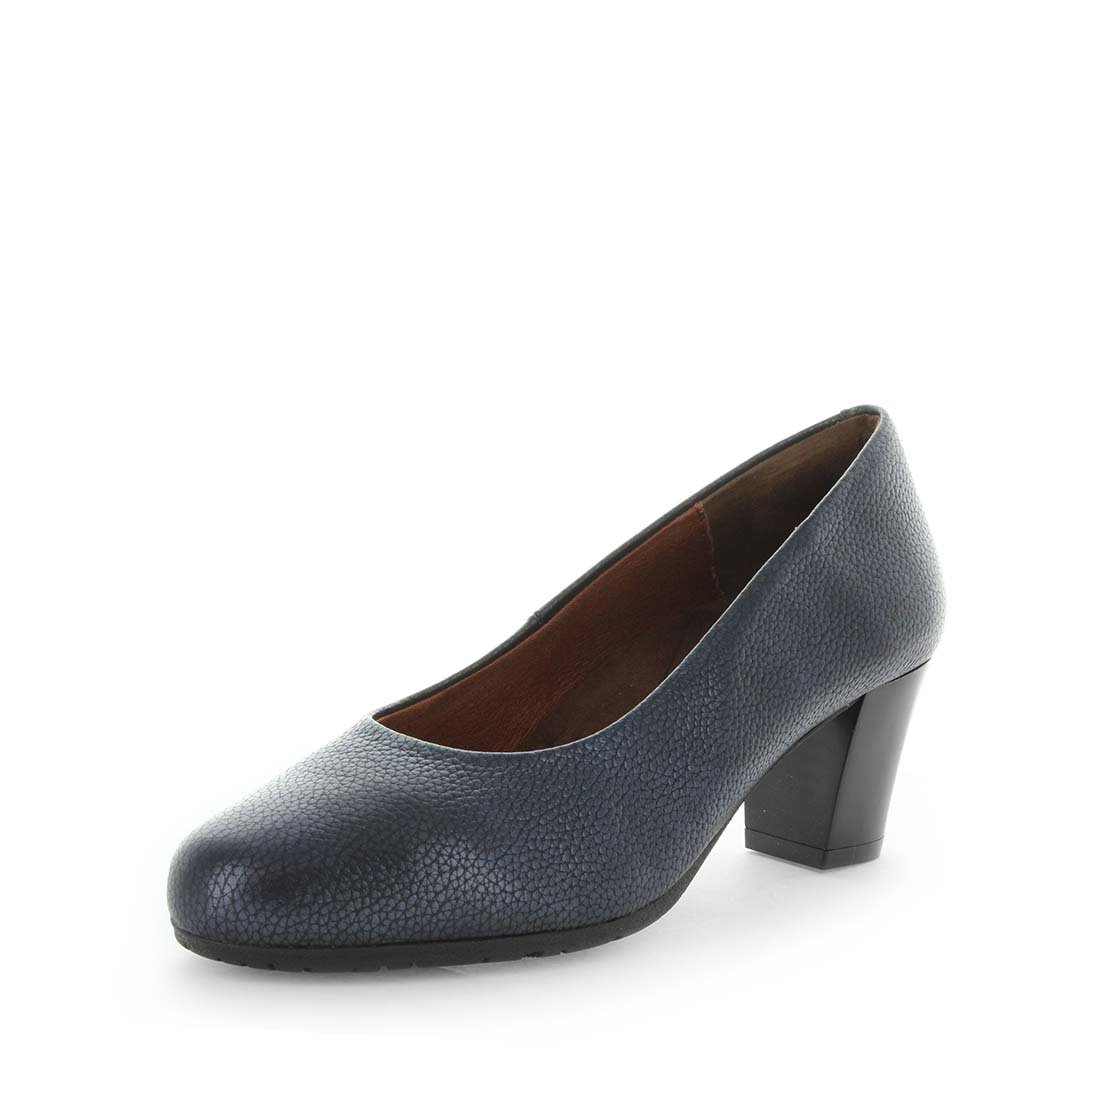 dorris, desiree, comfort leather heels, comfortable leather shoes, flexible heels, flexible shoes, classic heels, office shoes, womens shoes, womens heels, ladies shoes, ladies heels, womens office heels, womens office leather shoes, spanish leather shoes, heels made in spain, ladies shoes made in spain,